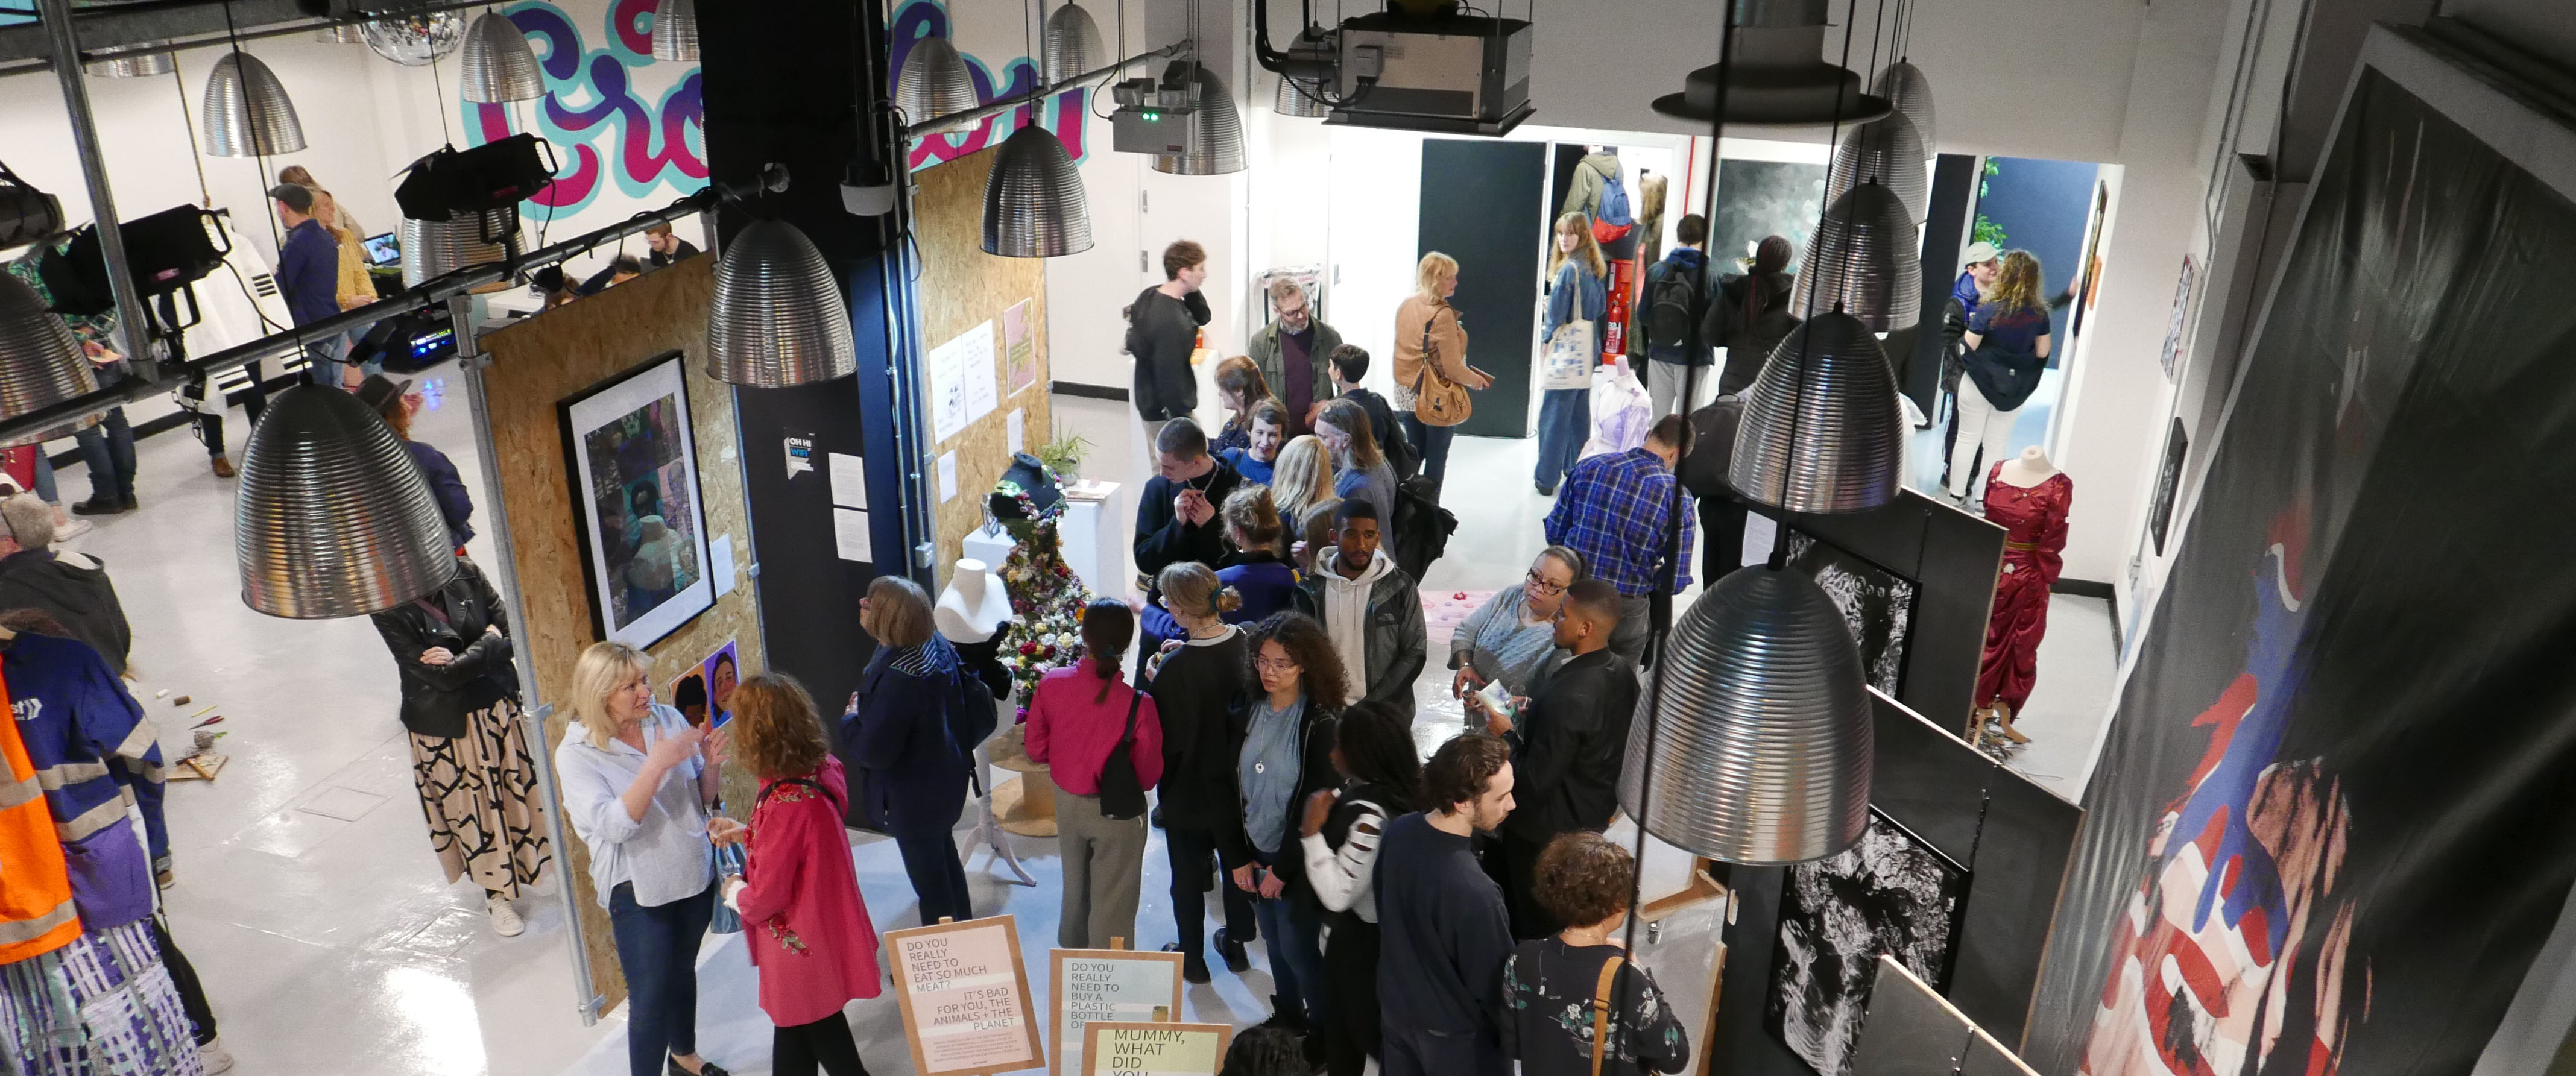 Populated art exhibition